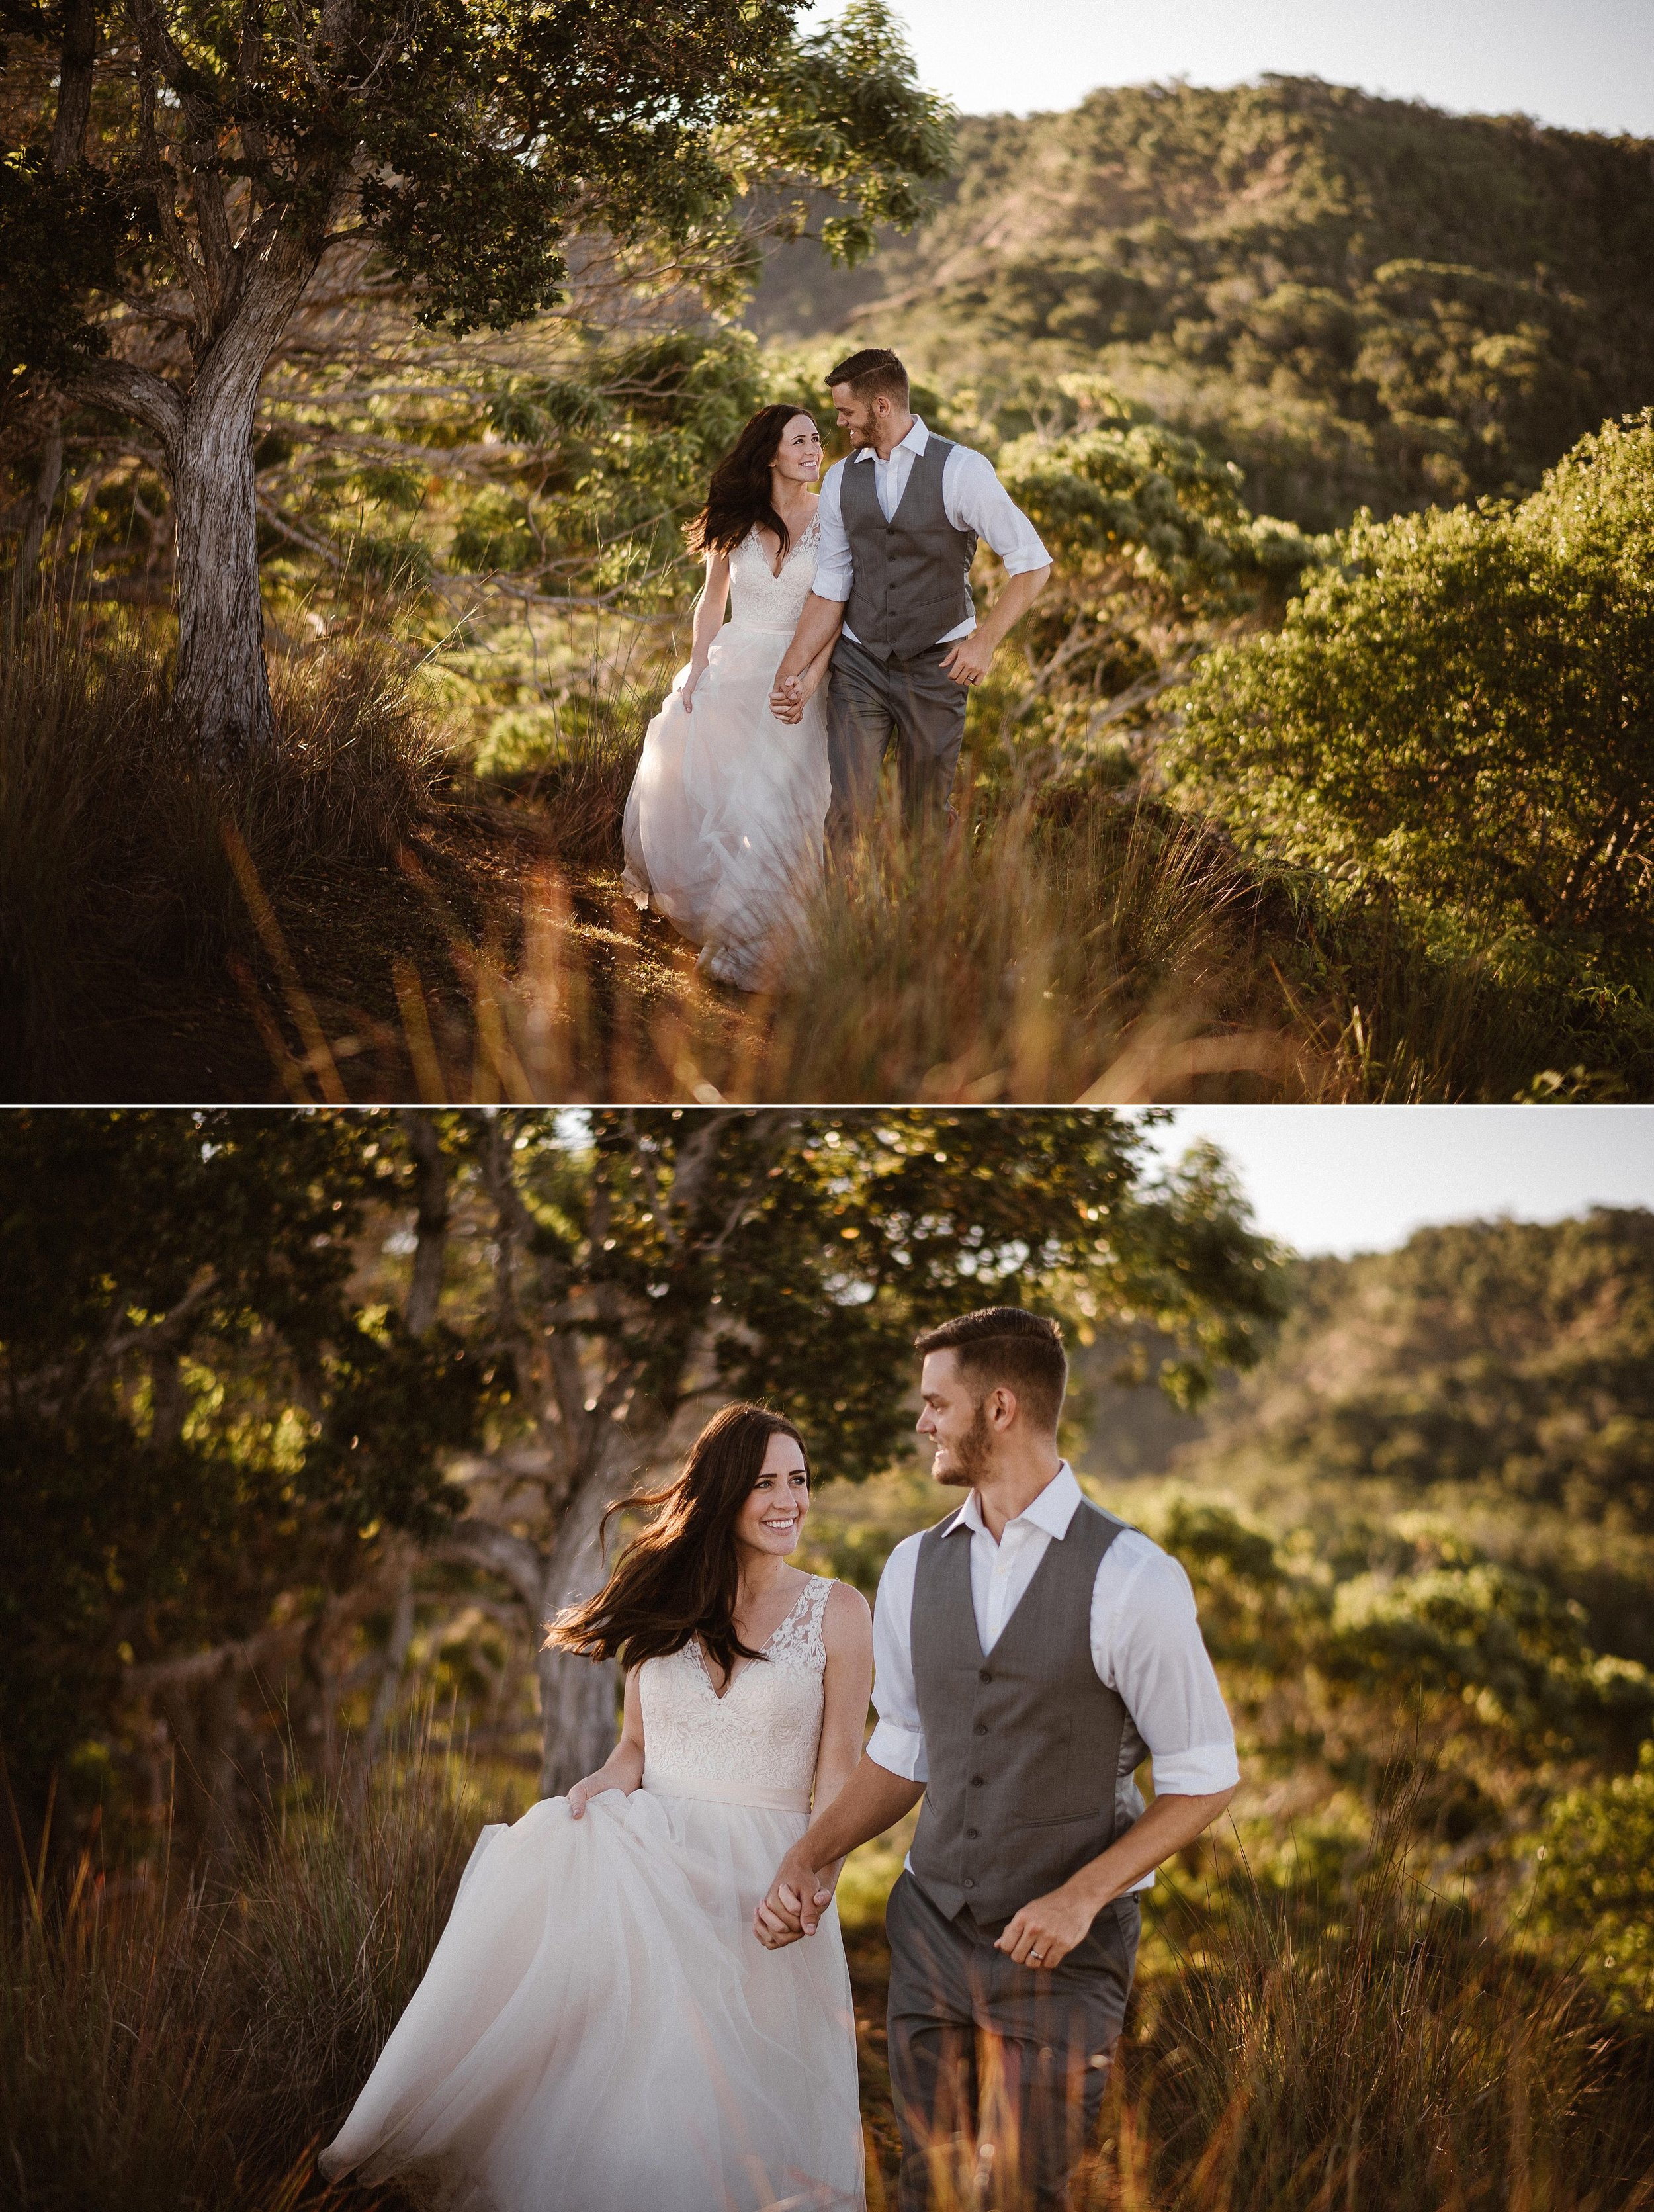 They found a clearing in the trees and suddenly felt like they were transported from their tropical destination elopement in Hawaii to another world of tall grasses and random twisted trees. They smiled affectionately at each other as their intimate elopement photographer Maddie Mae captured each romantic moment.